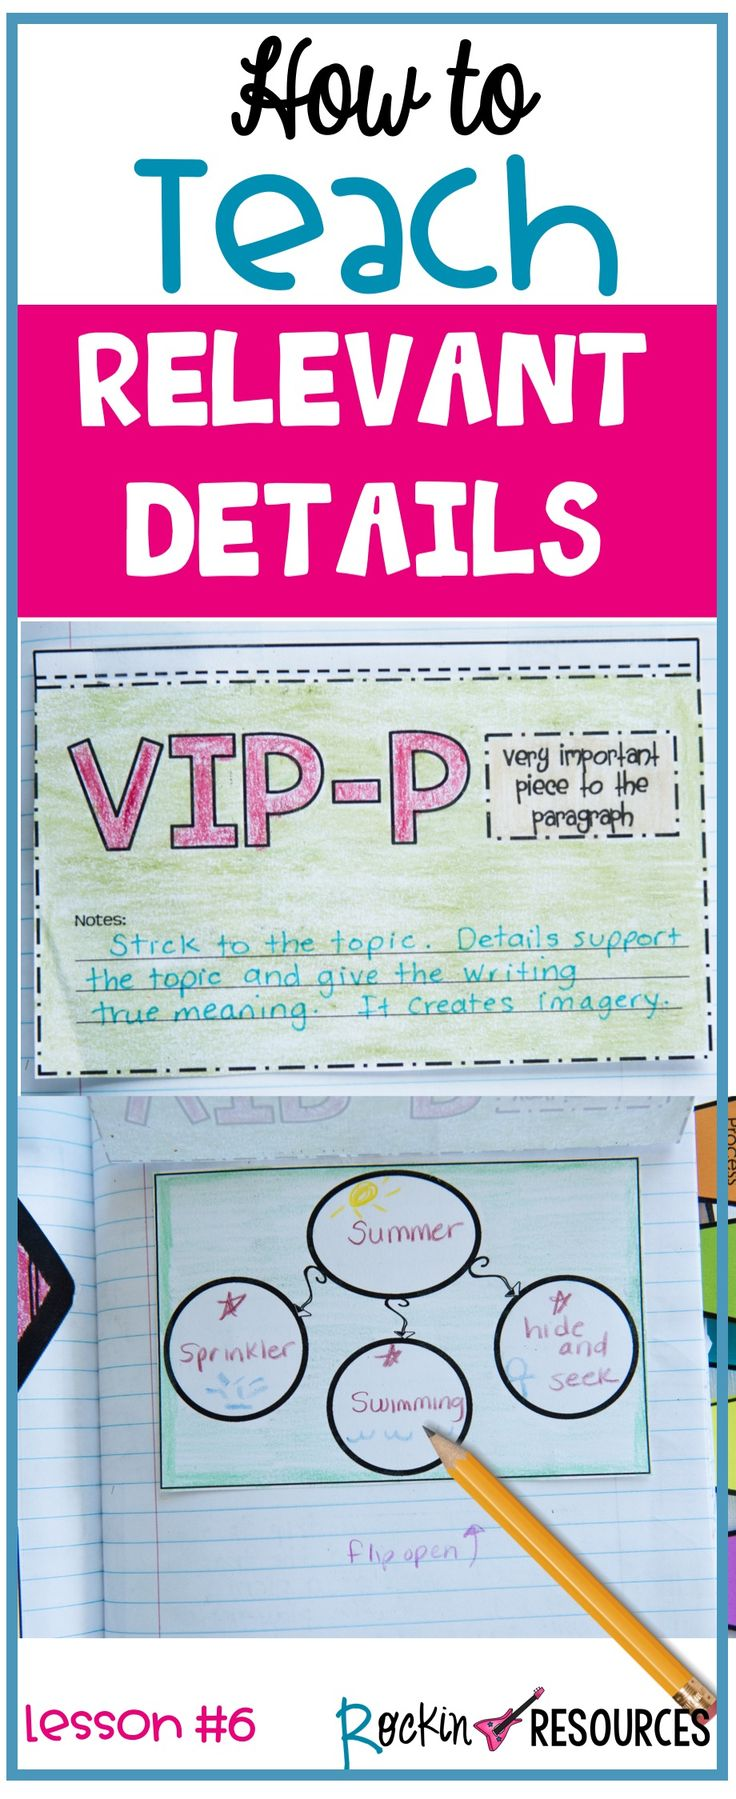 Do you need ideas for teaching students about RELEVANT DETAILS? This writing mini lesson will provide ideas for teaching students about writing relevant details in a paragraph including TRANSITION WORDS to help the paragraph flow smoothly. These ideas are ideal for any writing curriculum and are a part of a series of mini lessons for writer's workshop designed for scaffolding through the writing process.